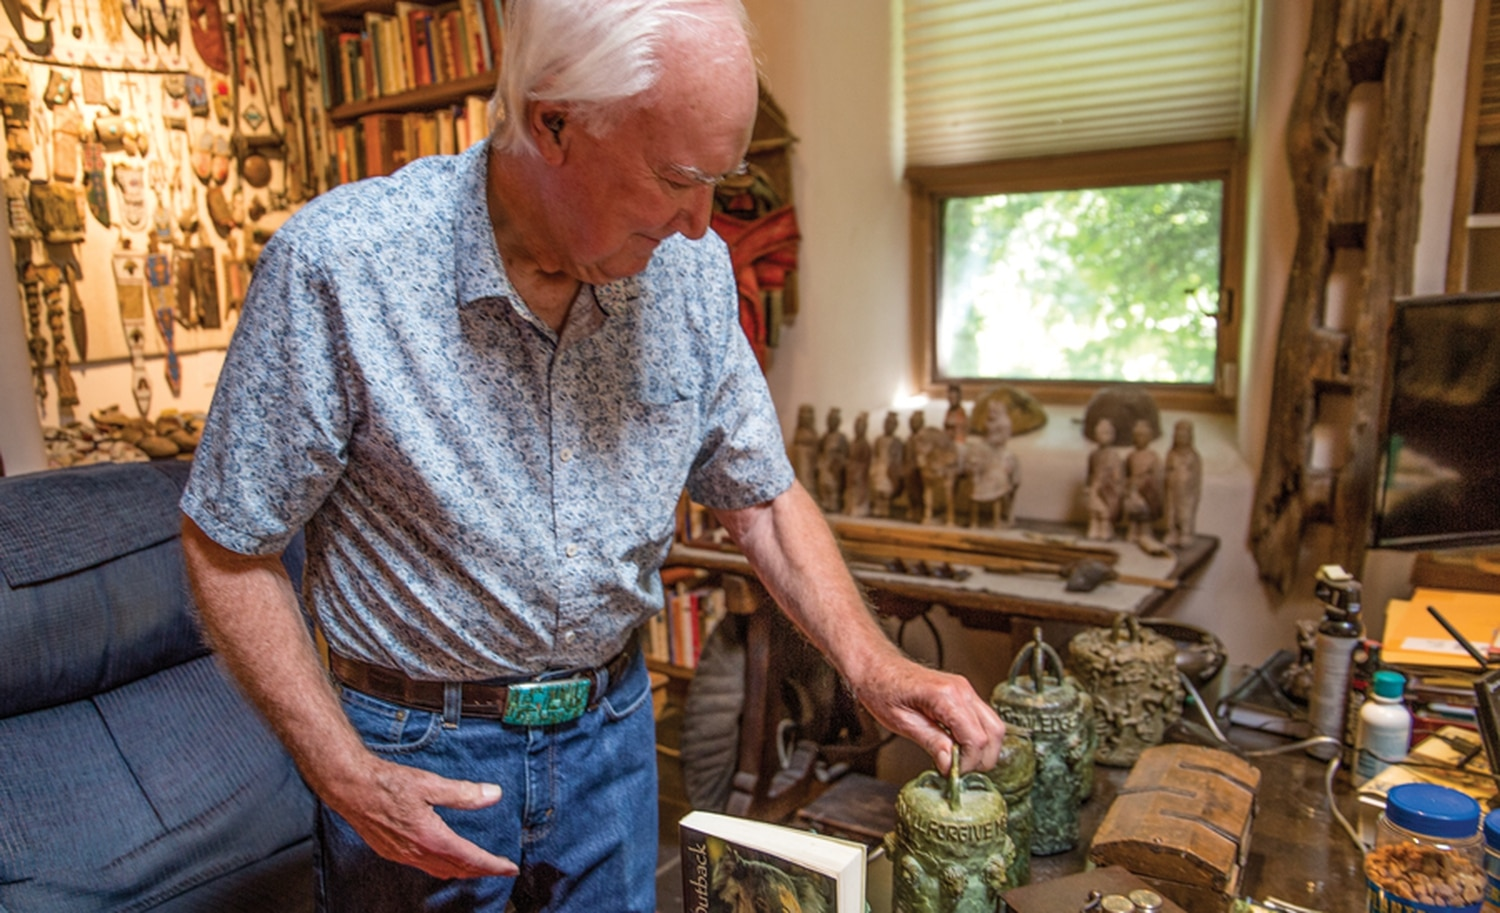 Forrest Fenn's famed treasure is not the only thing he hid. Fenn showed off a set of bronze jars on a visit to his home in 2018 and told SFR he planned to hide those too.